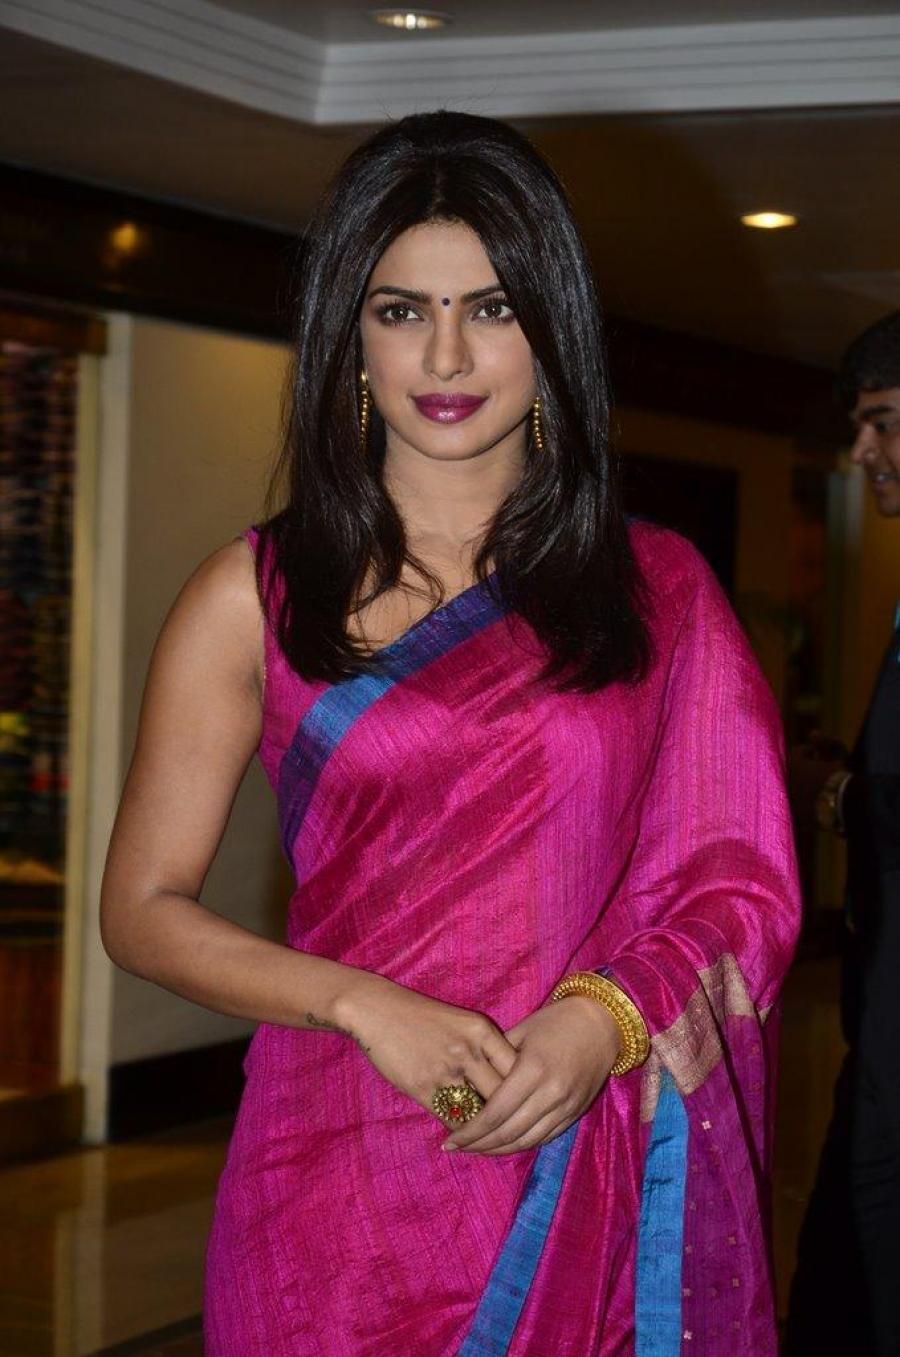 Priyanka Chopra Hot Stills At Awards Function In Pink Saree